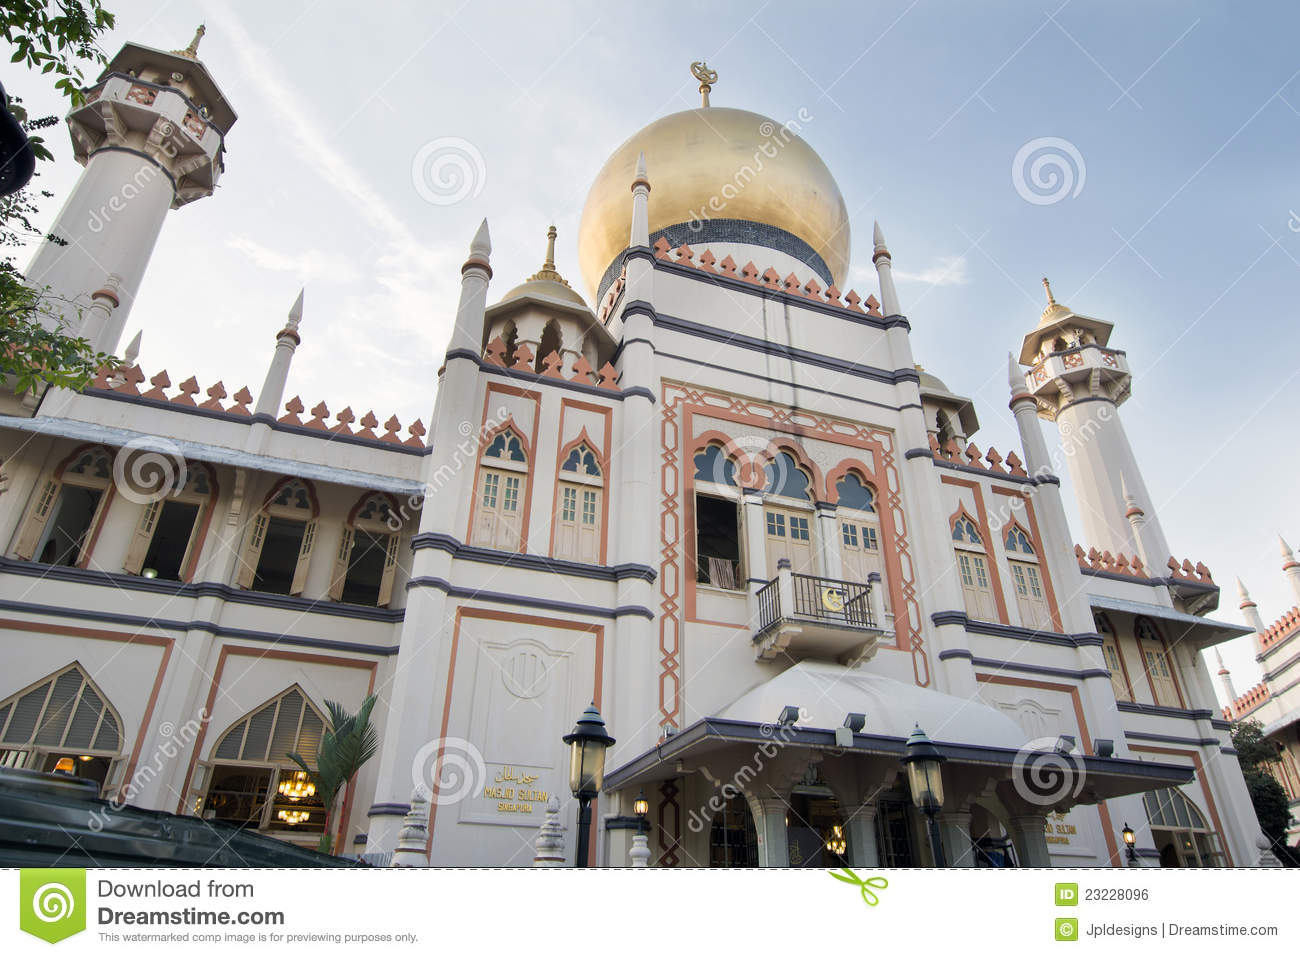 Masjid Sultan Mosque in Singapore